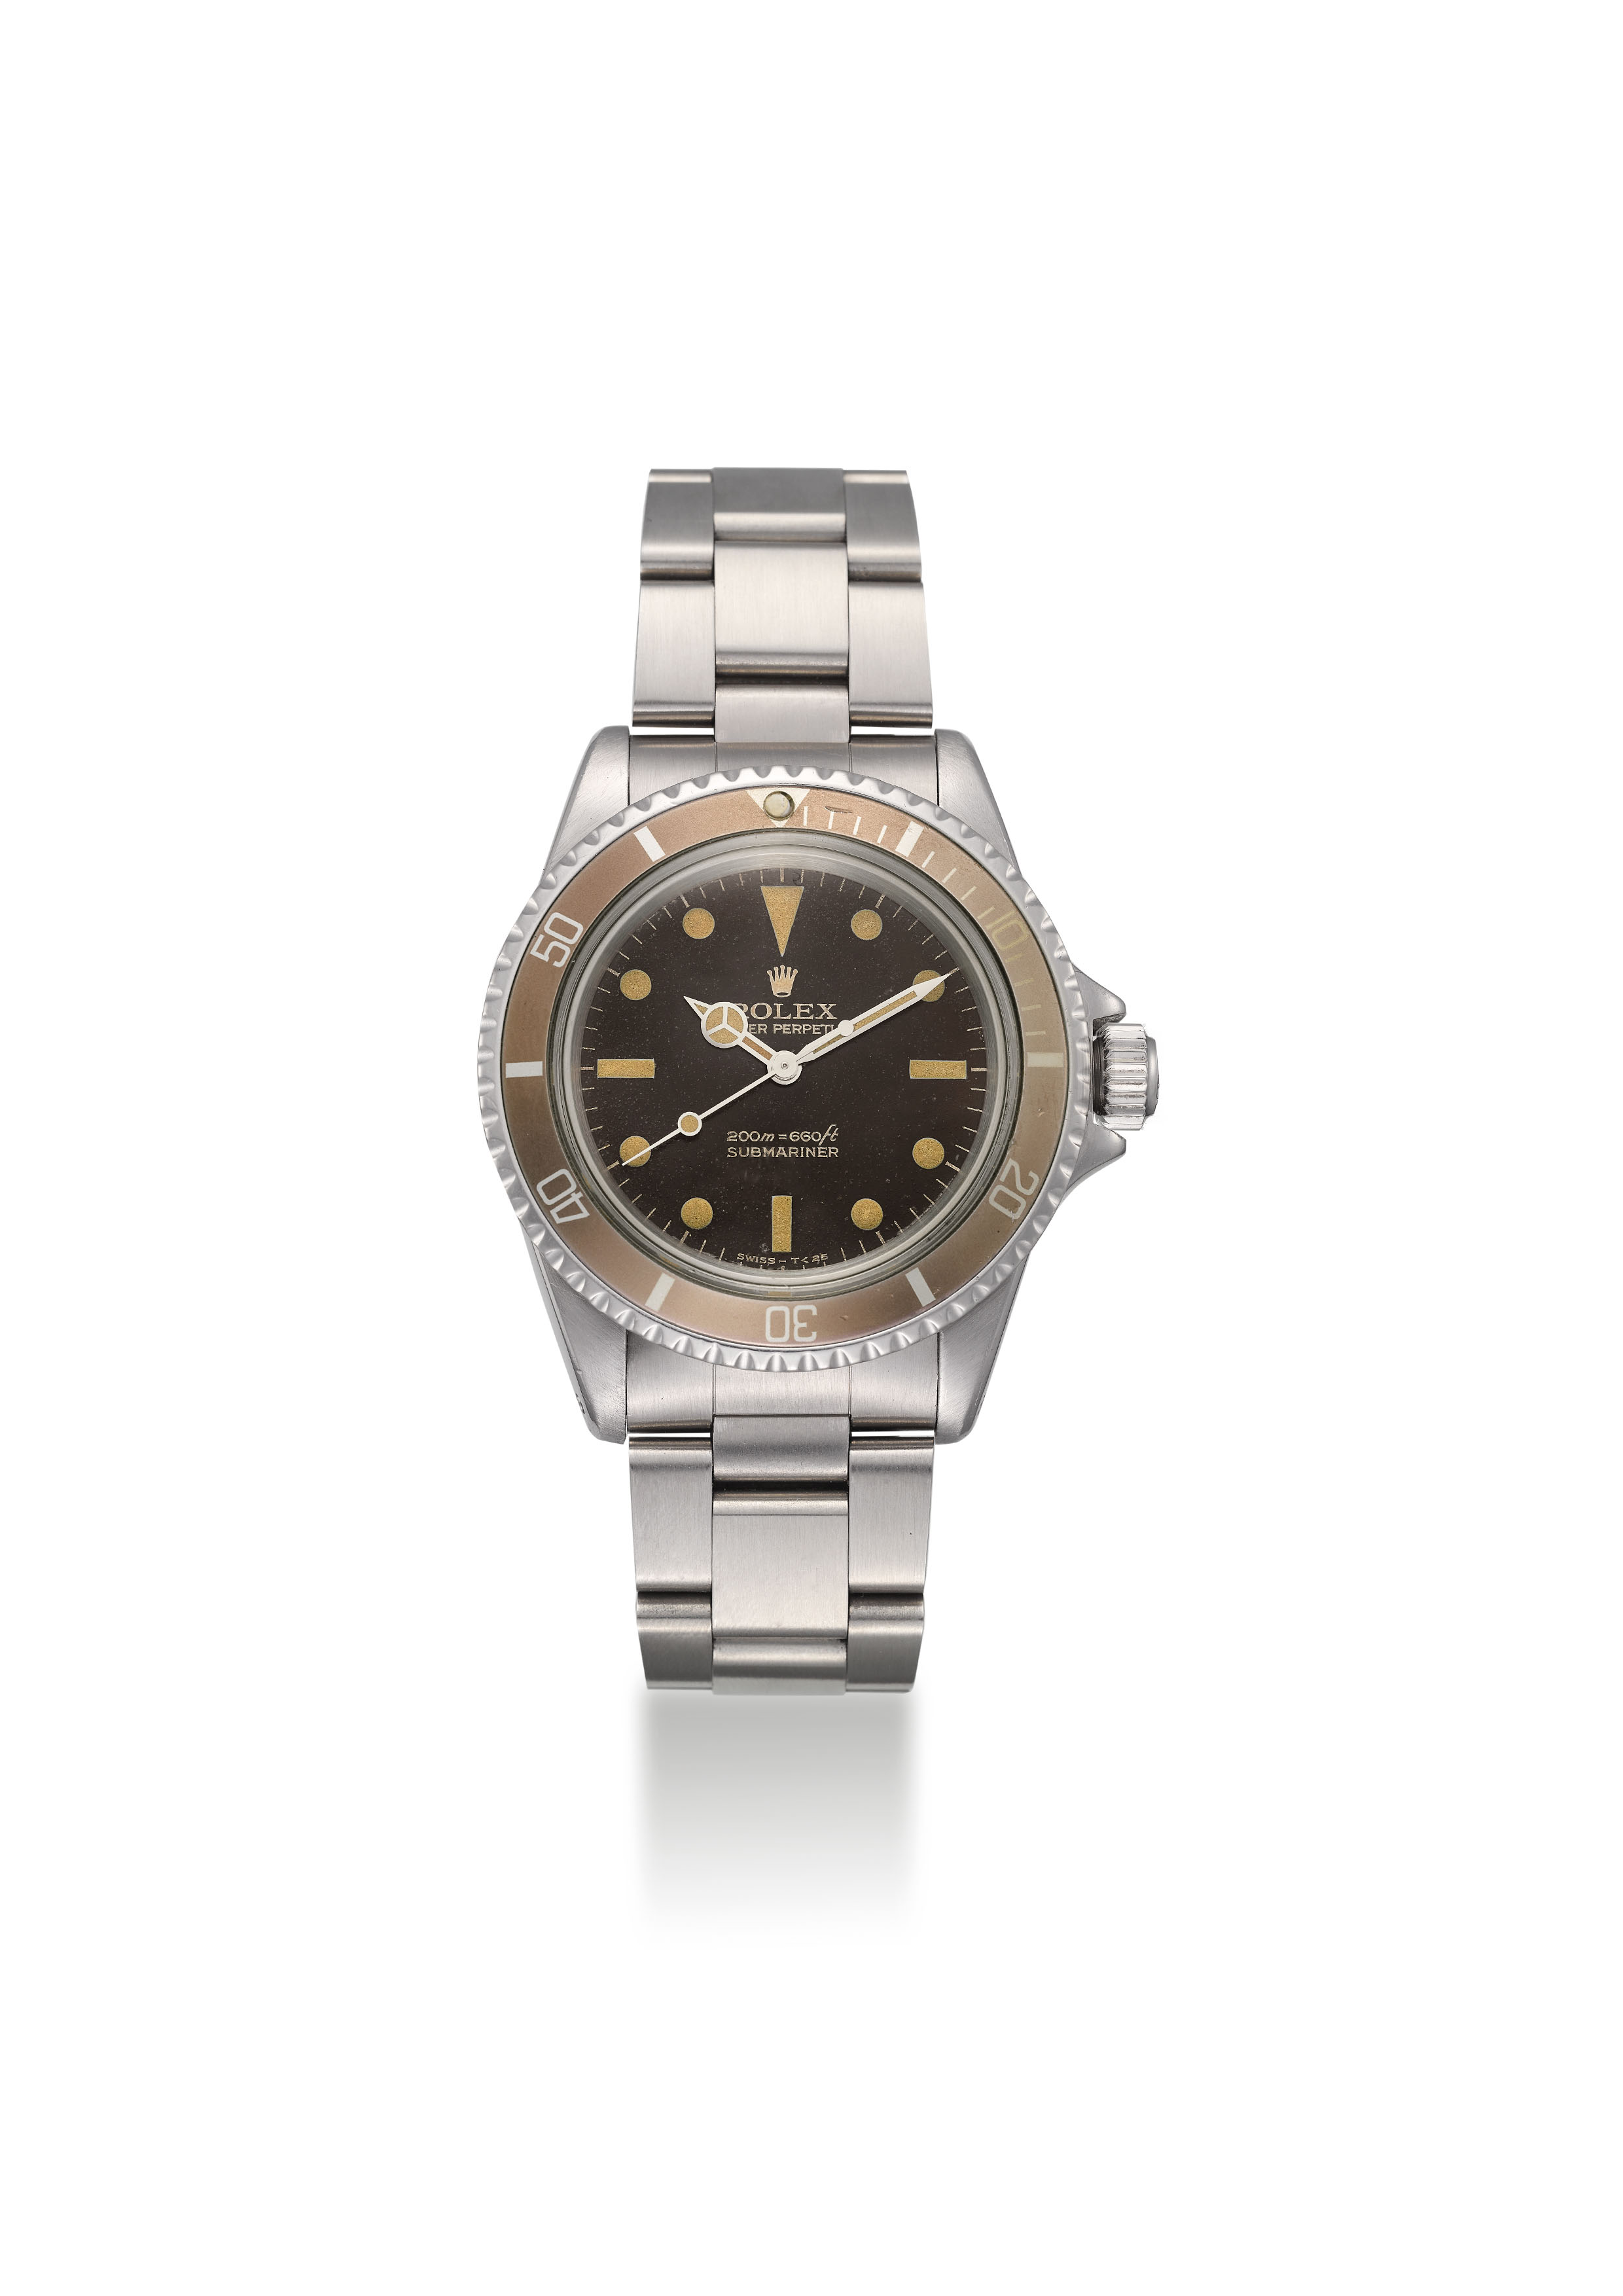 ROLEX. A FINE AND VERY RARE STAINLESS STEEL AUTOMATIC WRISTWATCH WITH SWEEP CENTRE SECONDS, STARDUST DIAL AND BRACELET